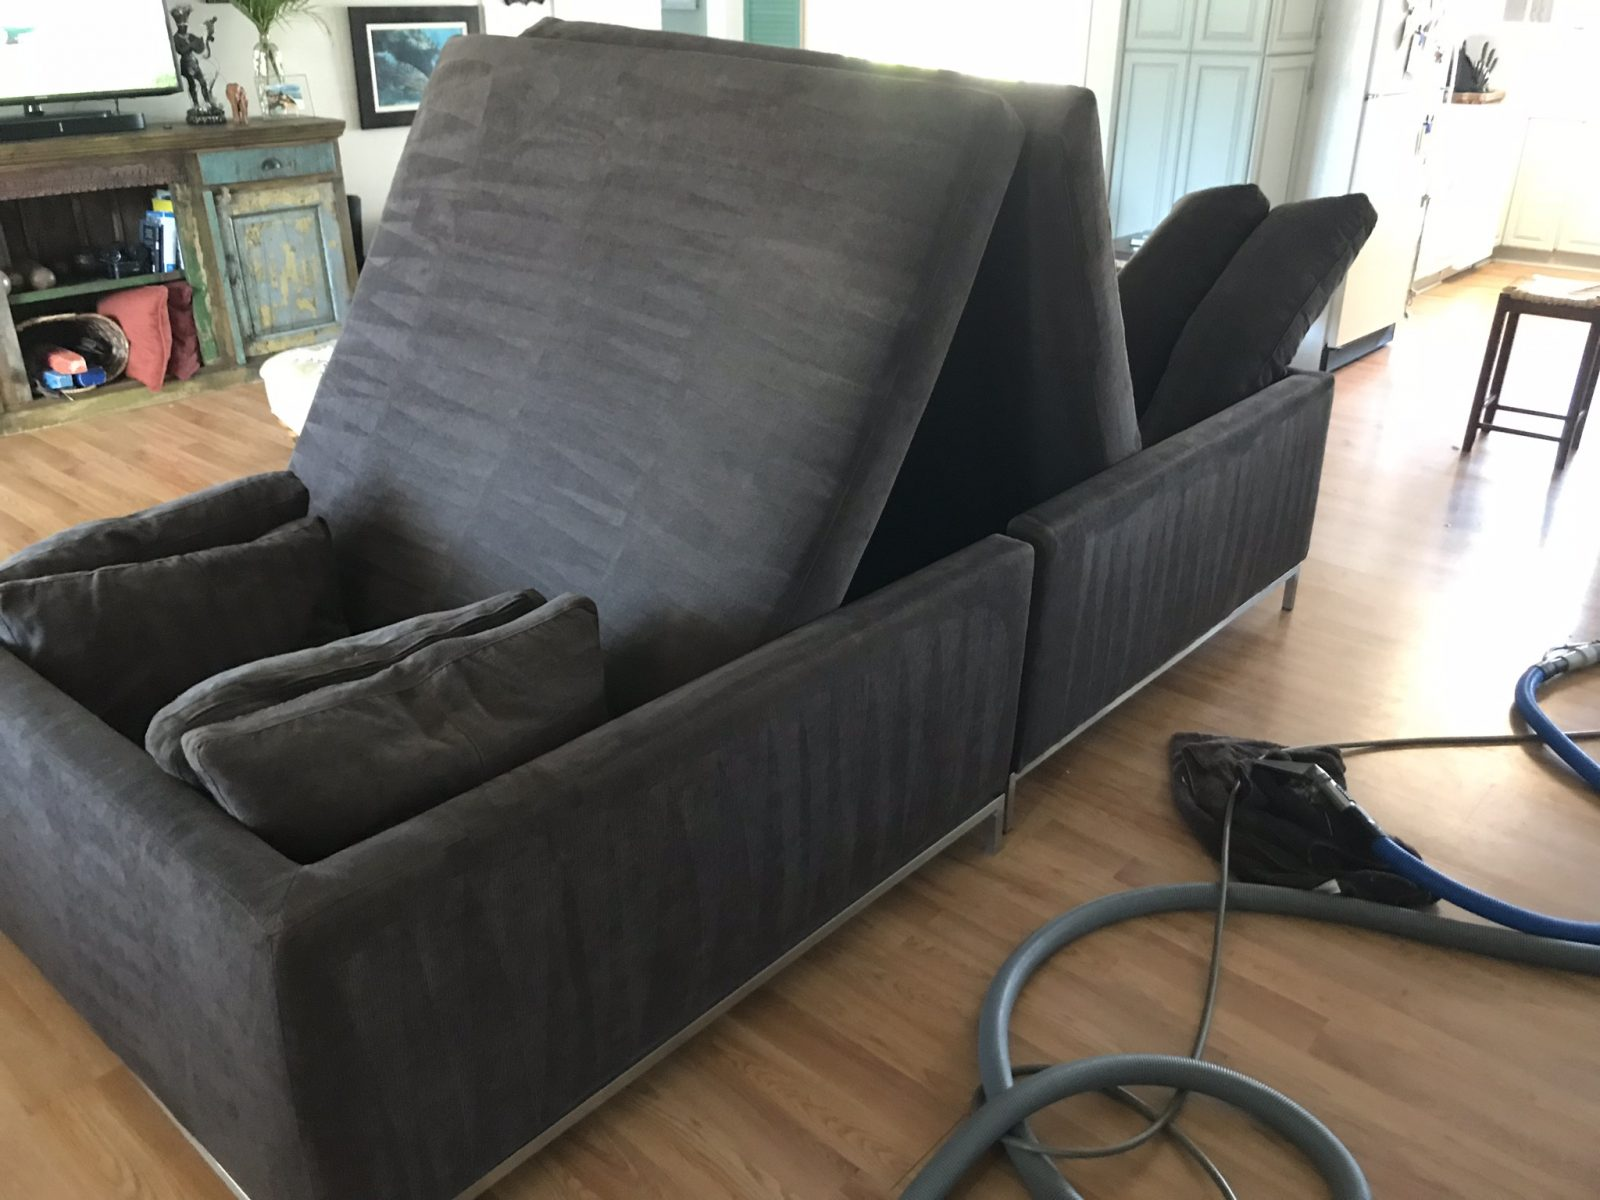 Professional Upholstery Cleaning Palm Harbor Florida by Howards Cleaning Service